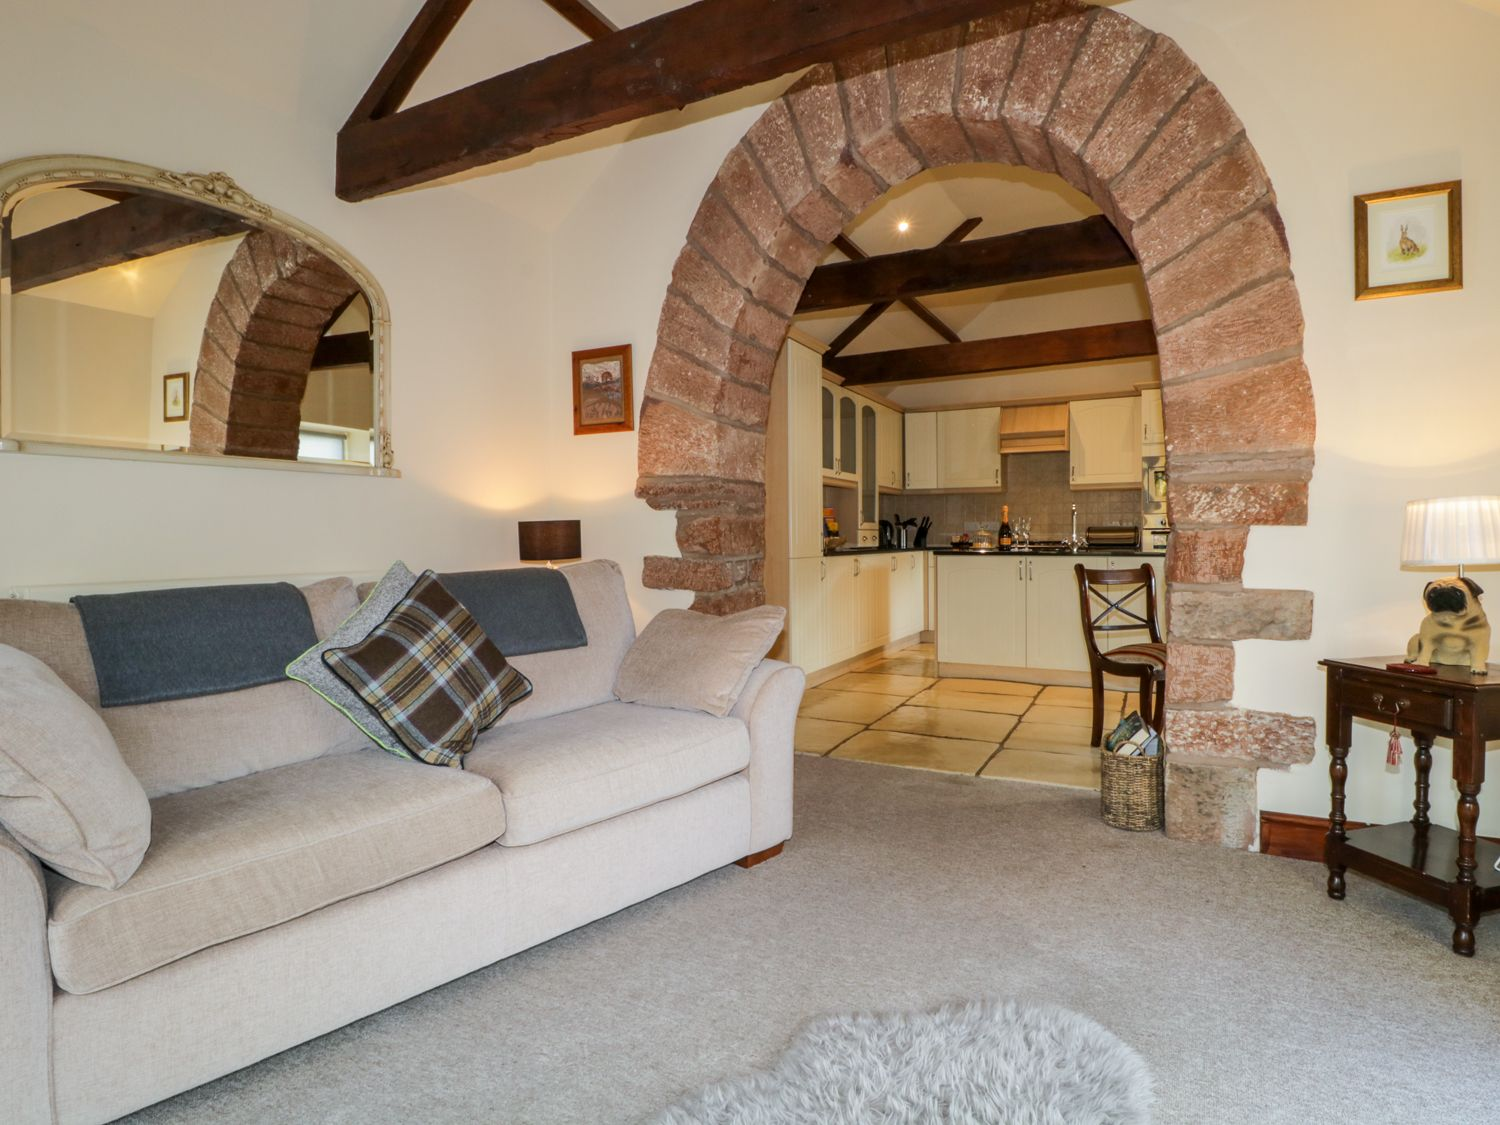 Carwinley Mill House Cottage in Longtown - sleeps 2 people